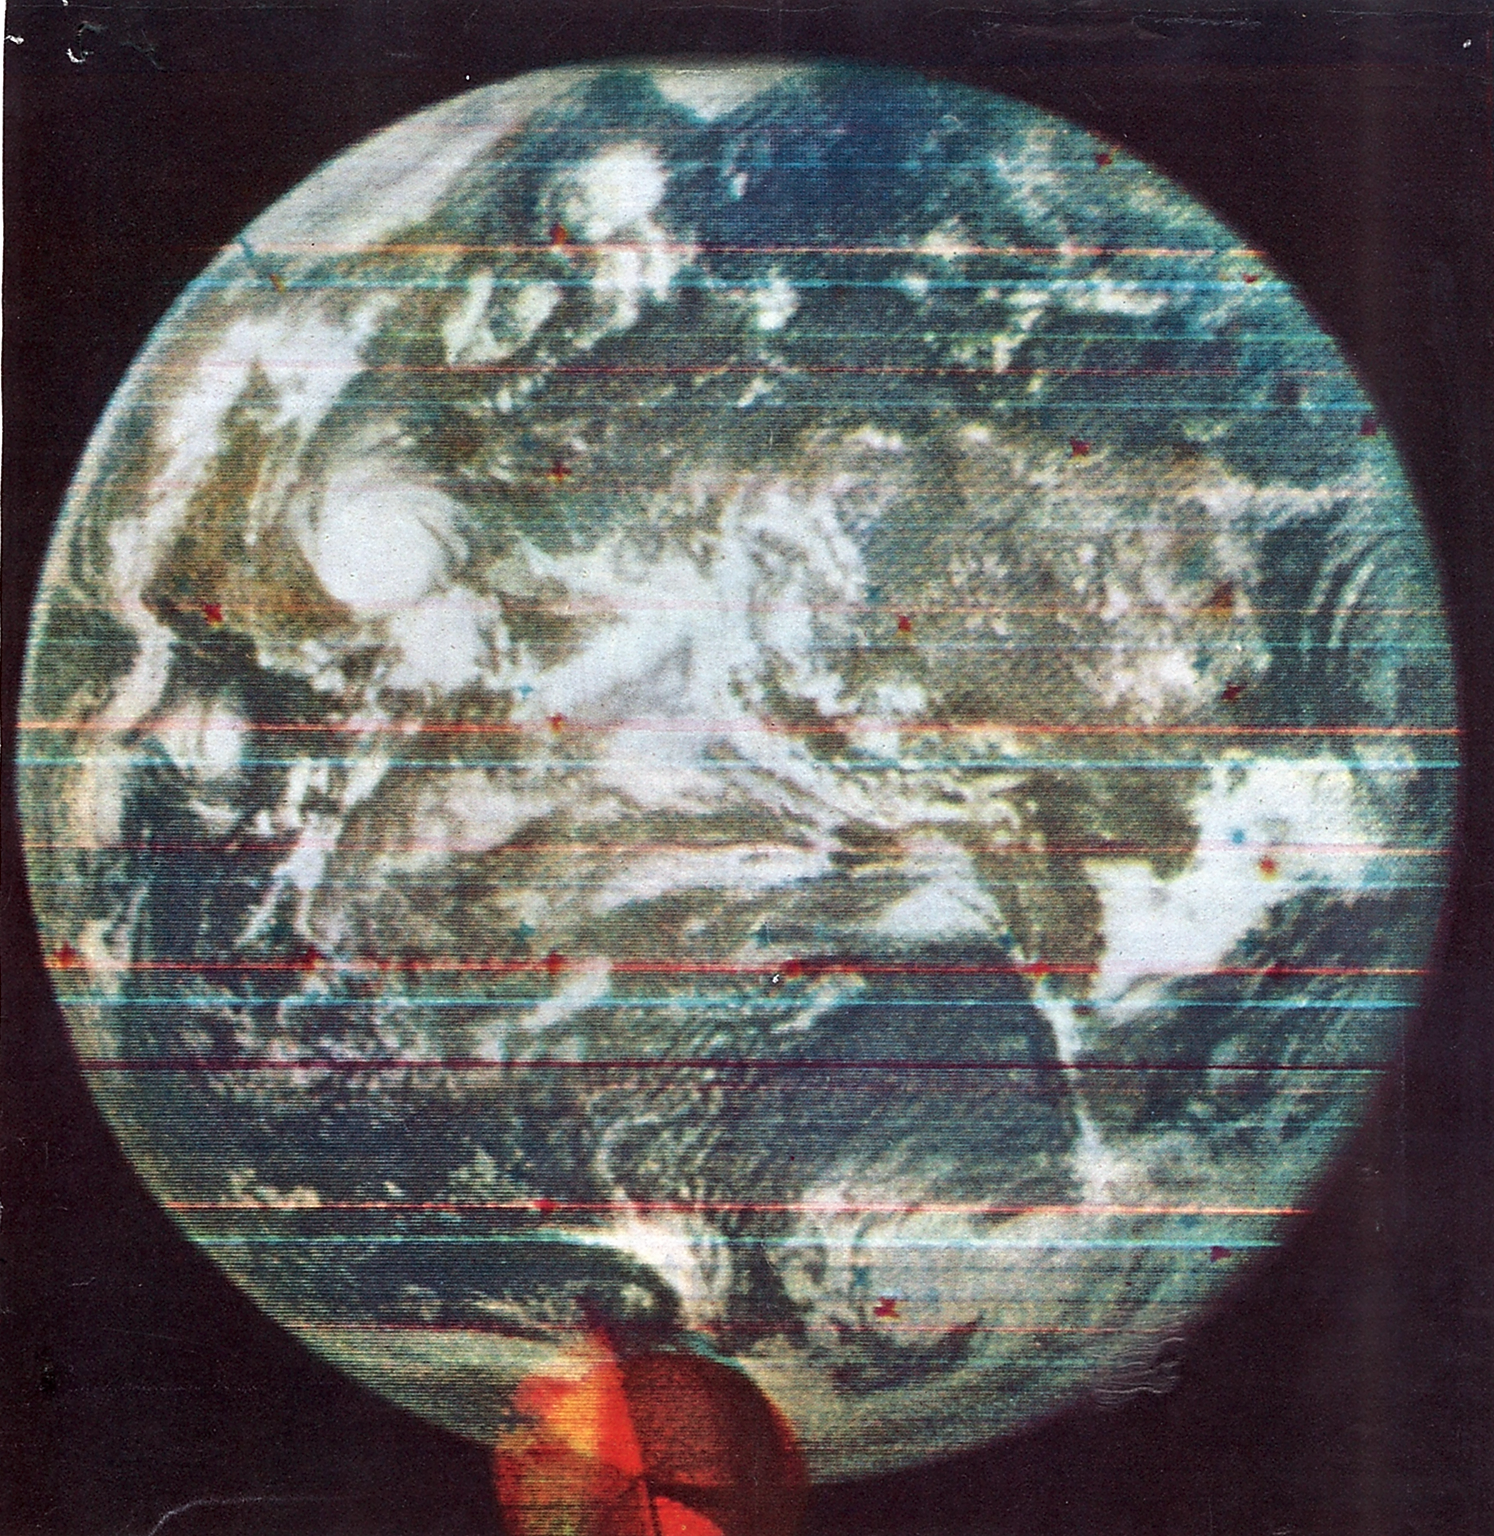 FileFirst Color Image Of The Earth From Outer Space Dodge Satellite